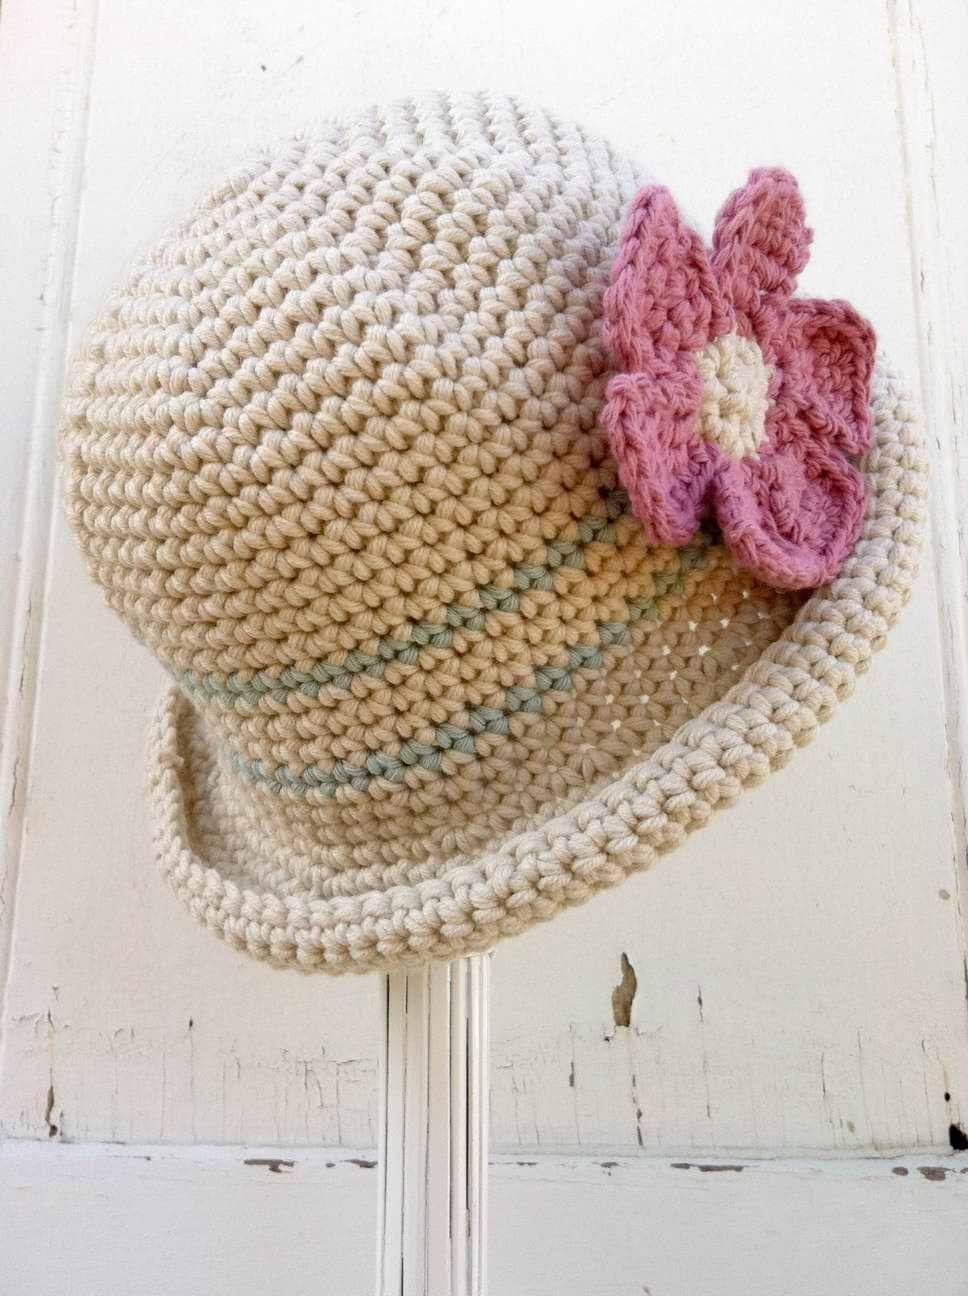 Free Crochet Pattern For Baby Floppy Hats : Crochet Hat Pattern Rolled Brim Hat Crochet Pattern No.119